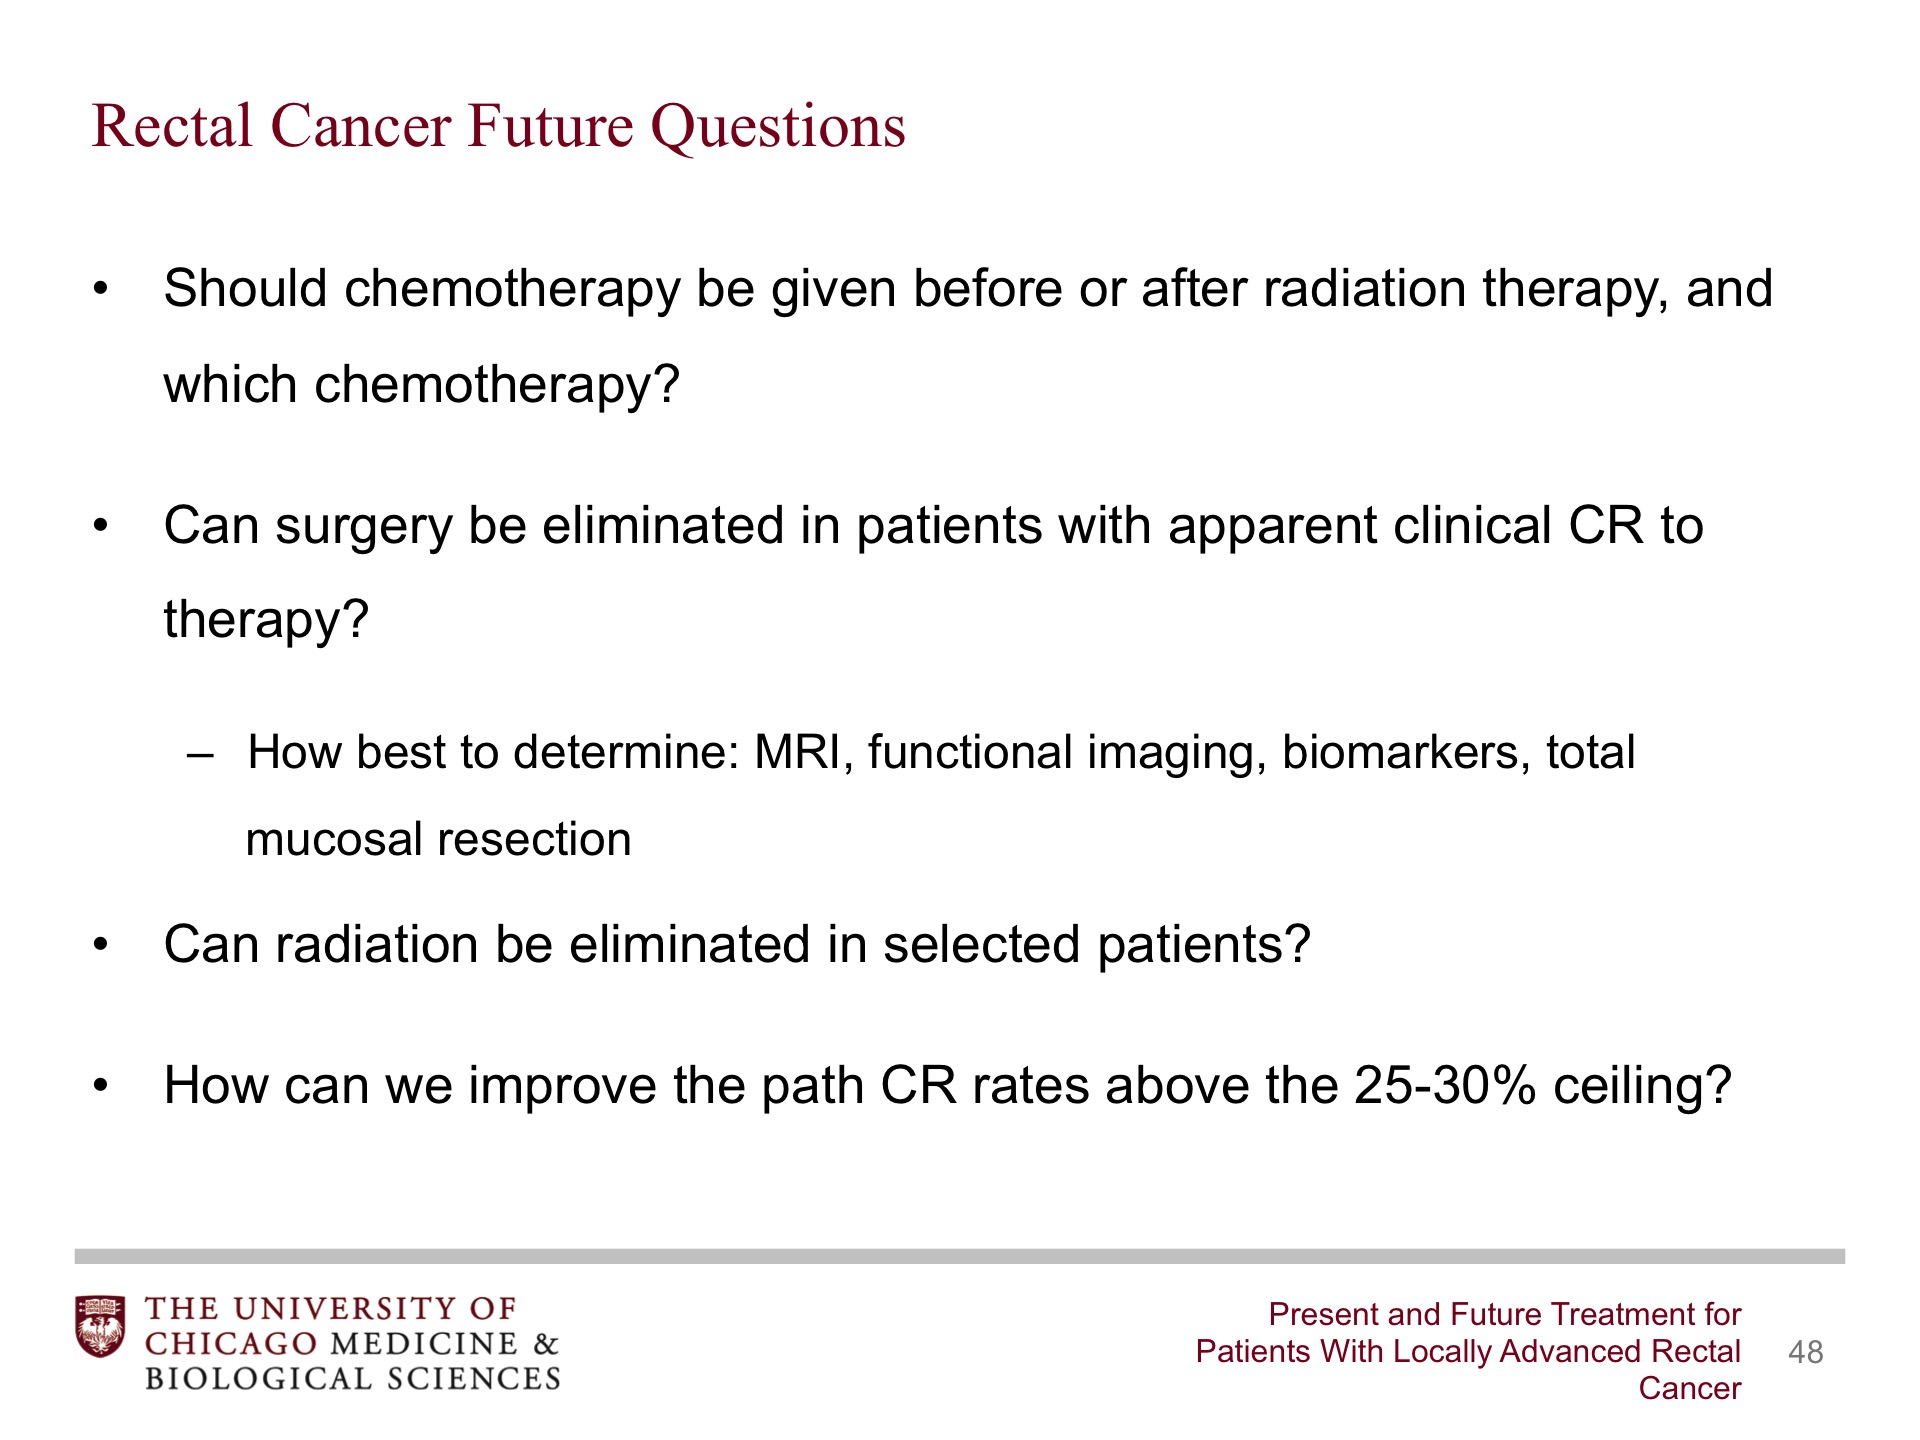 Present And Future Treatment For Patients With Locally Advanced Rectal Cancer Broadcastmed